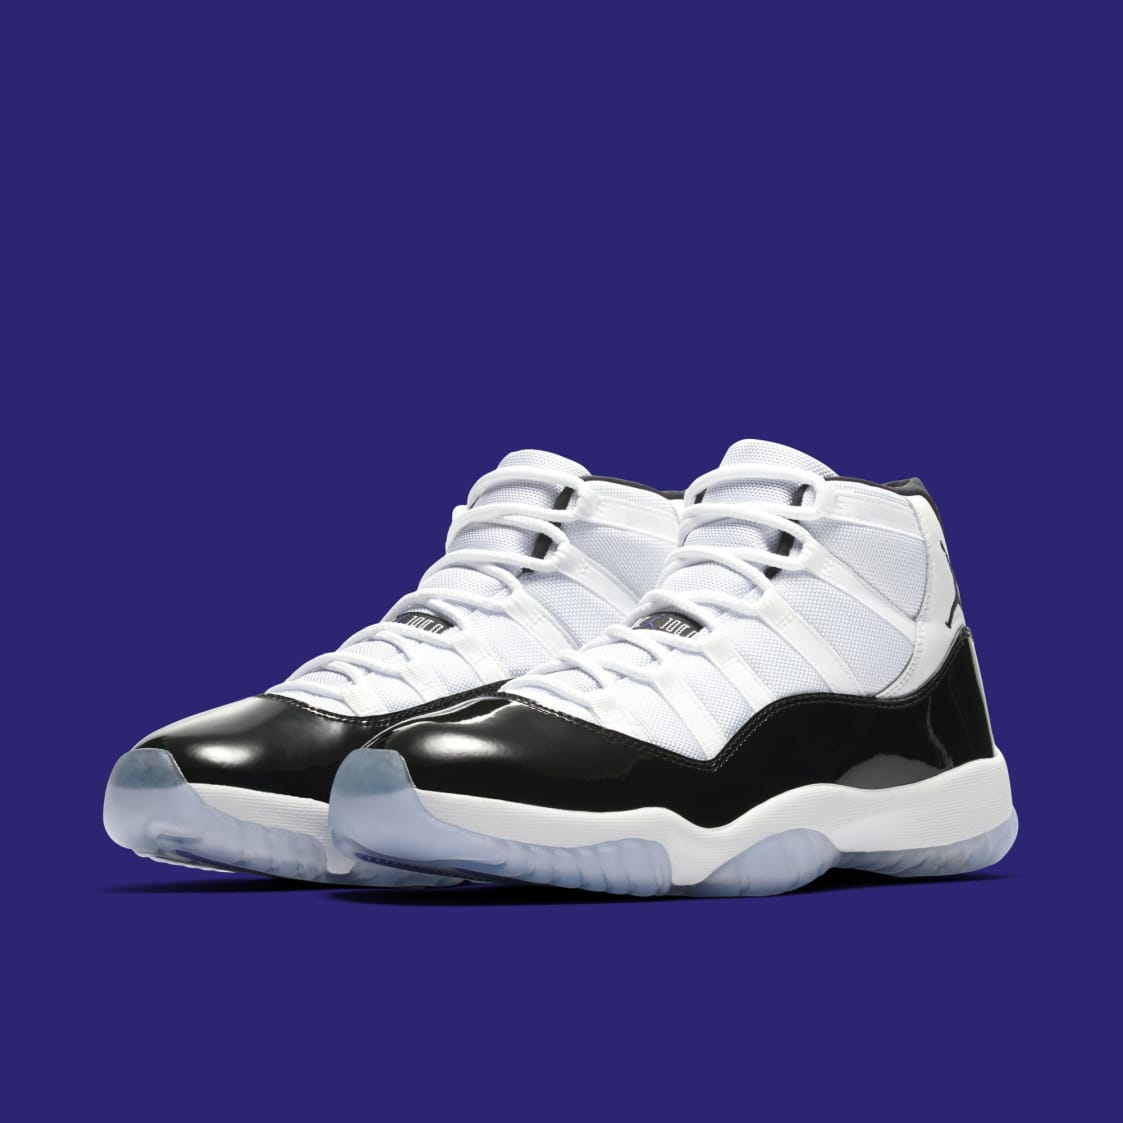 84ea821eeec61b Air Jordan 11  Everything You Should Know About the Sneaker